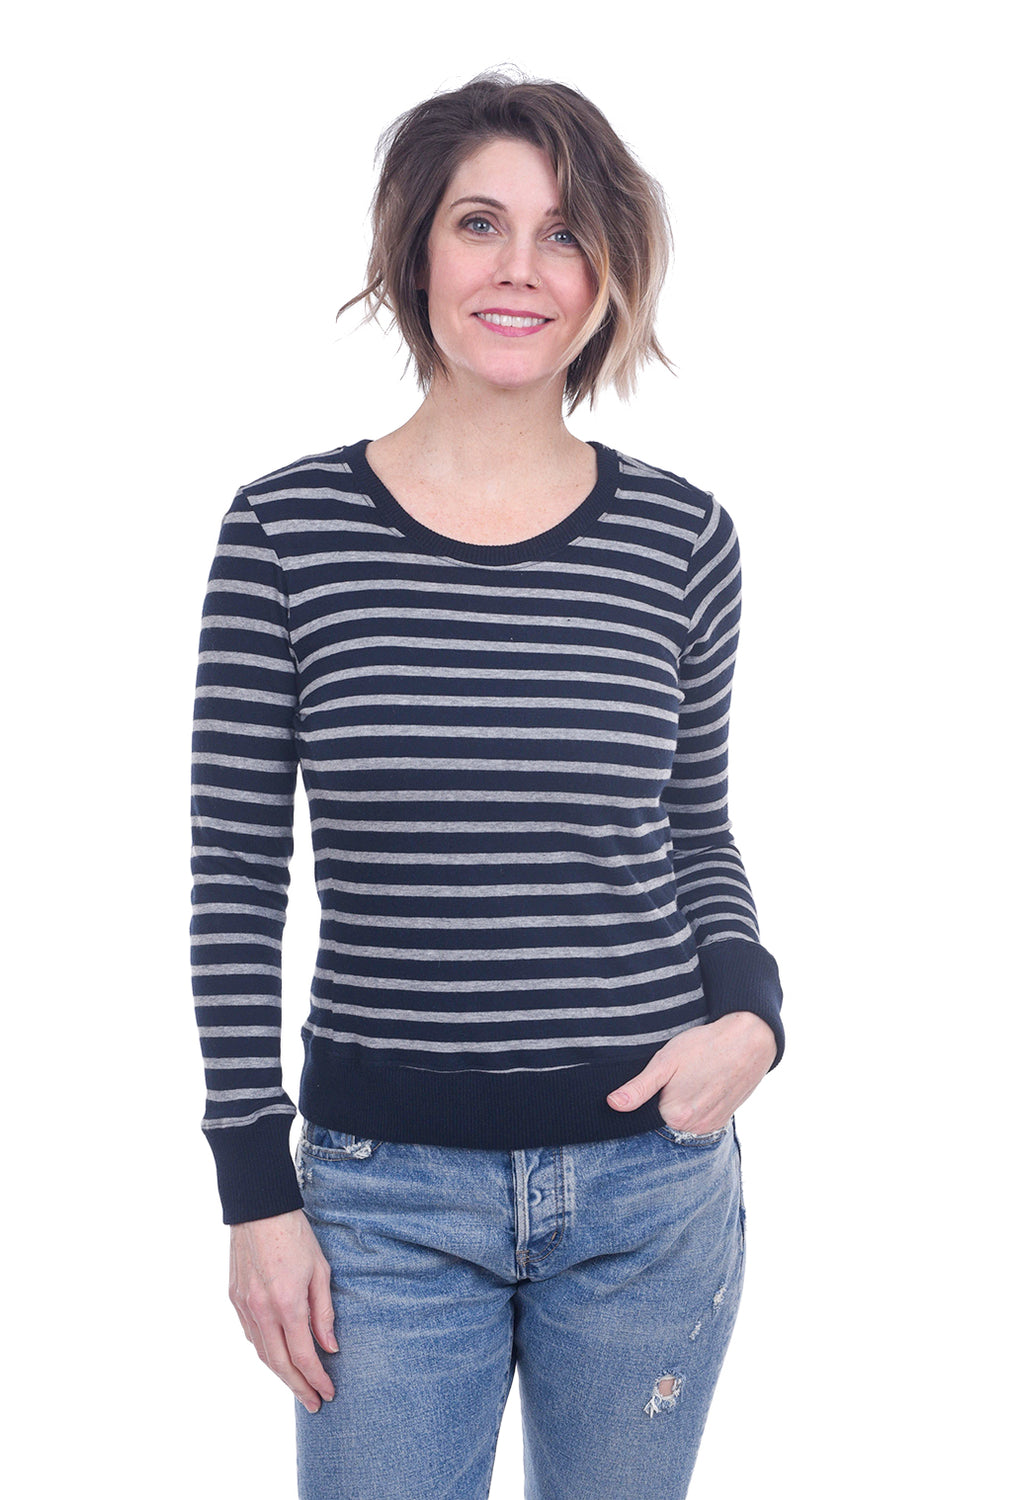 Enza Costa Cotton-Cashmere Striped Top, Navy Cadet